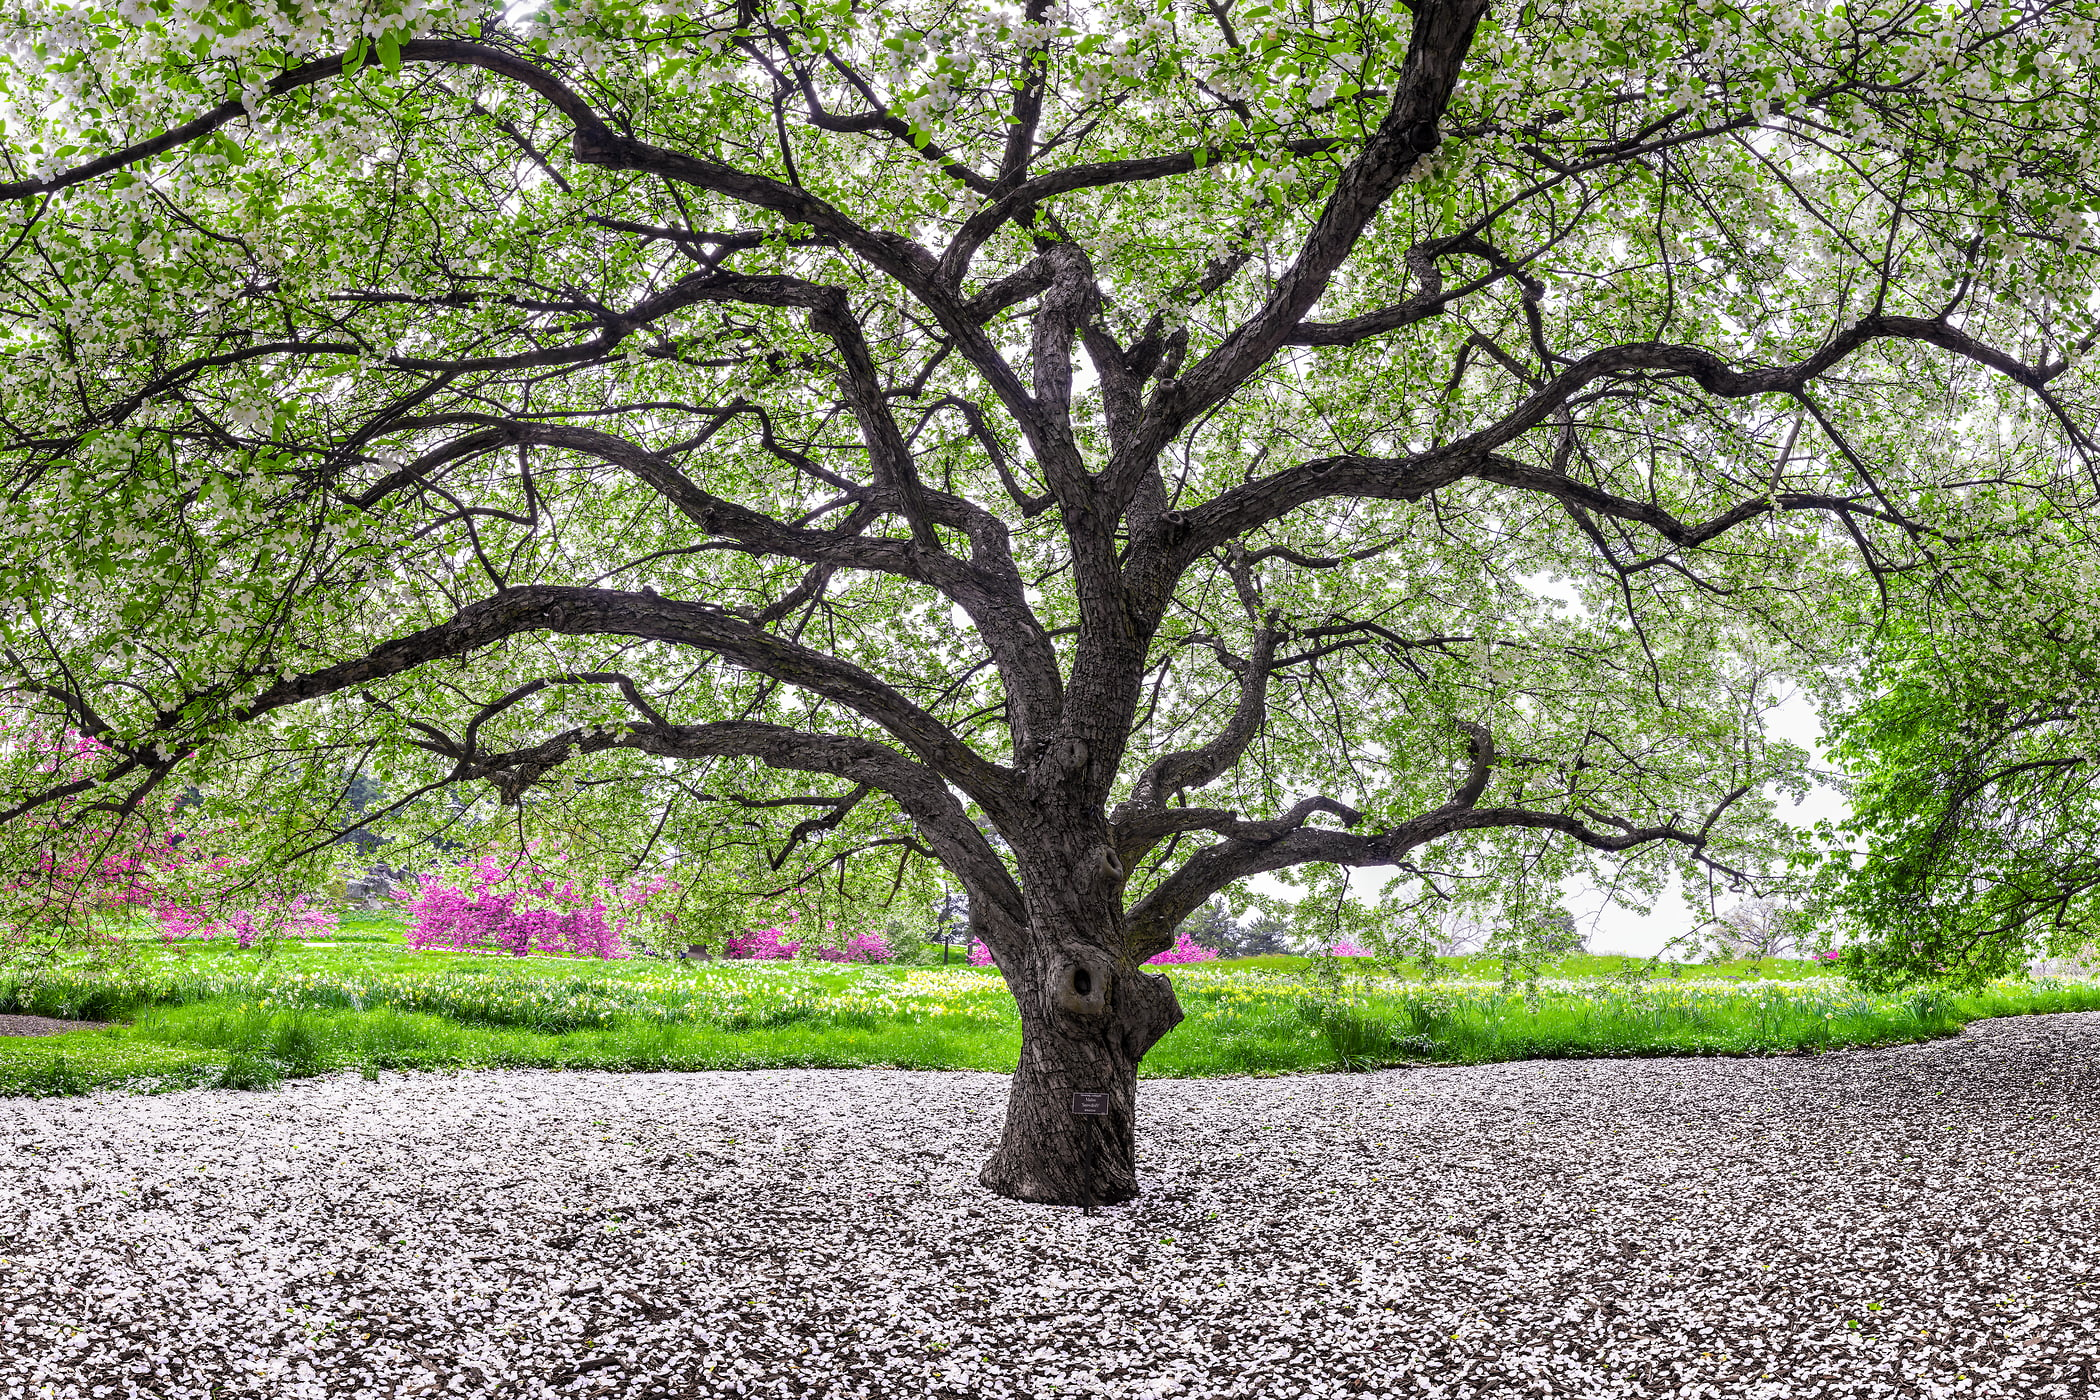 A very high resolution, large-format VAST photo of a crabapple tree blooming in spring with blossom petals on the ground; fine art photograph created by Dan Piech in the New York Botanical Garden, New York City